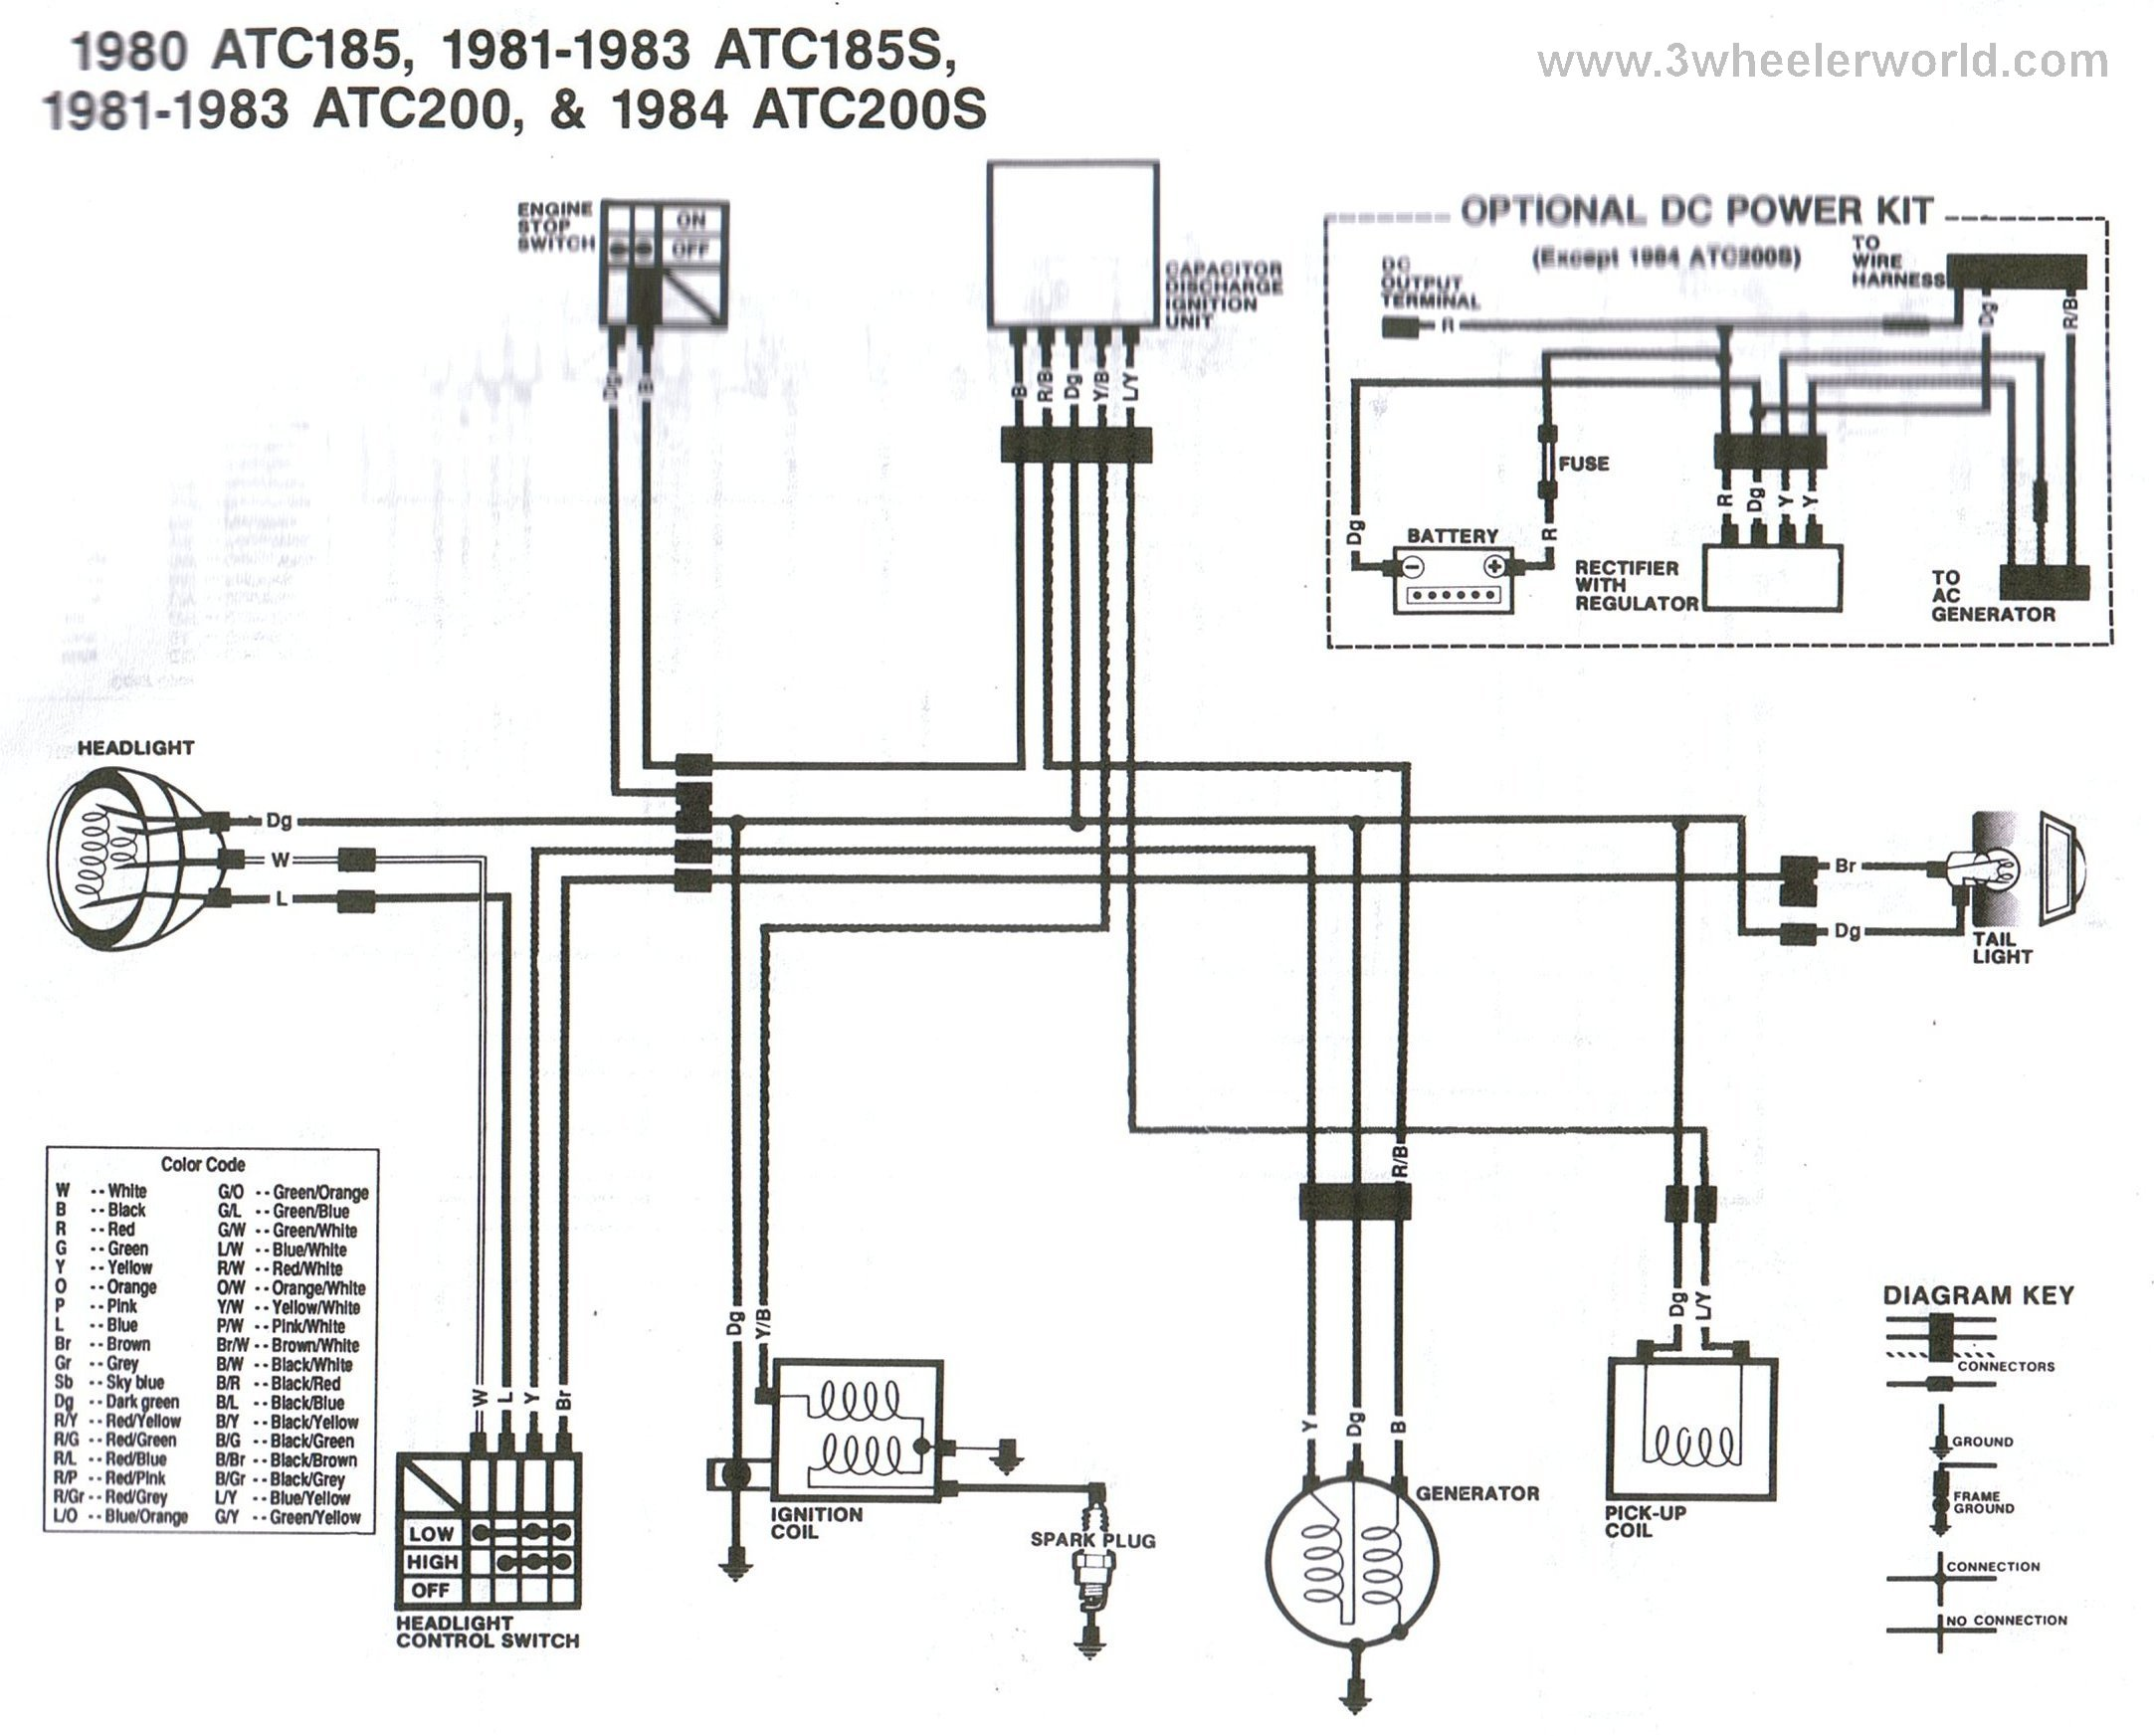 [SCHEMATICS_4UK]  3 WHeeLeR WoRLD-Tech Help Honda Wiring Diagrams | Honda Atc 200 Wiring Diagram |  | 3WHeeLeR WoRLD